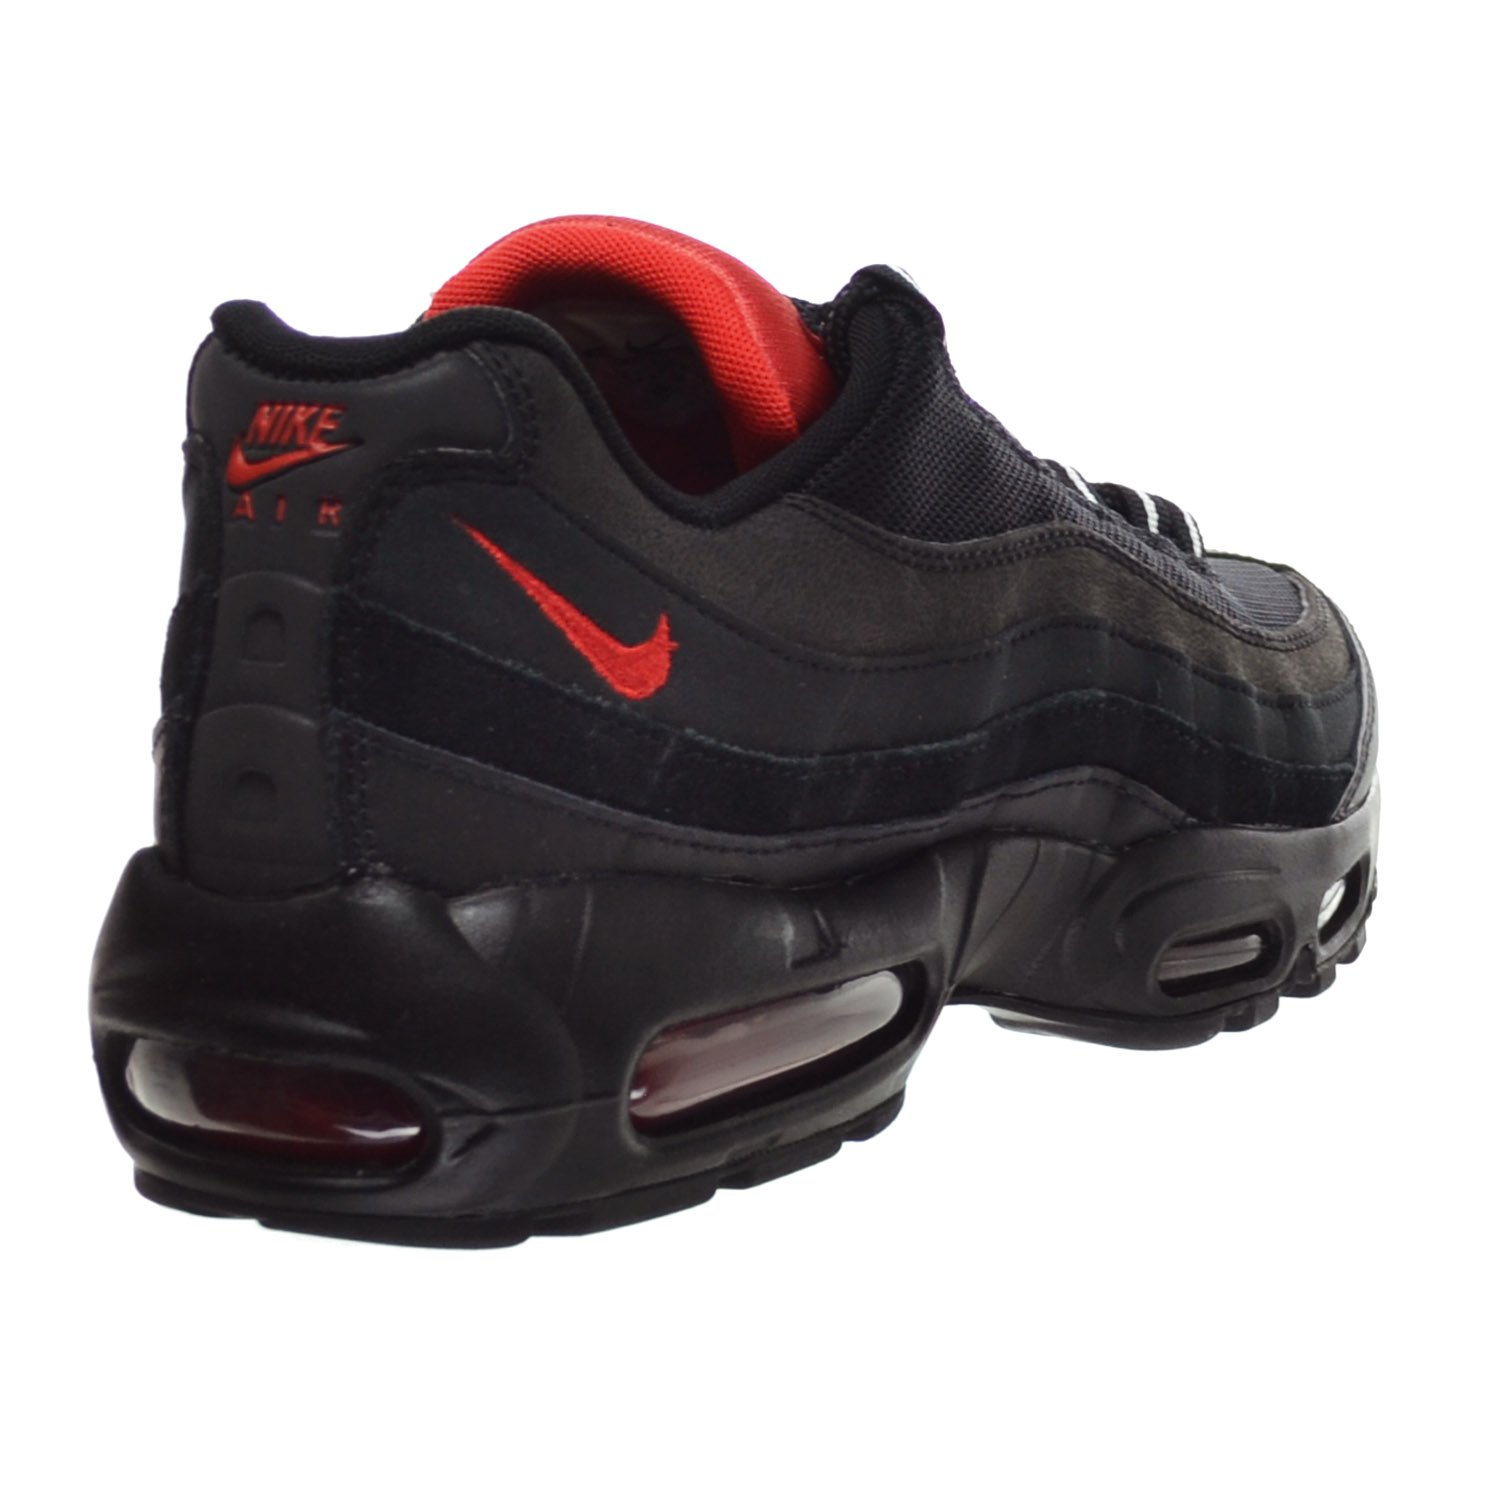 brand new 63093 ca496 Amazon.com   Nike Air Max 95 Essential Men s Shoes Black Challenge Red White  749766-016 (9.5 D(M) US)   Fashion Sneakers